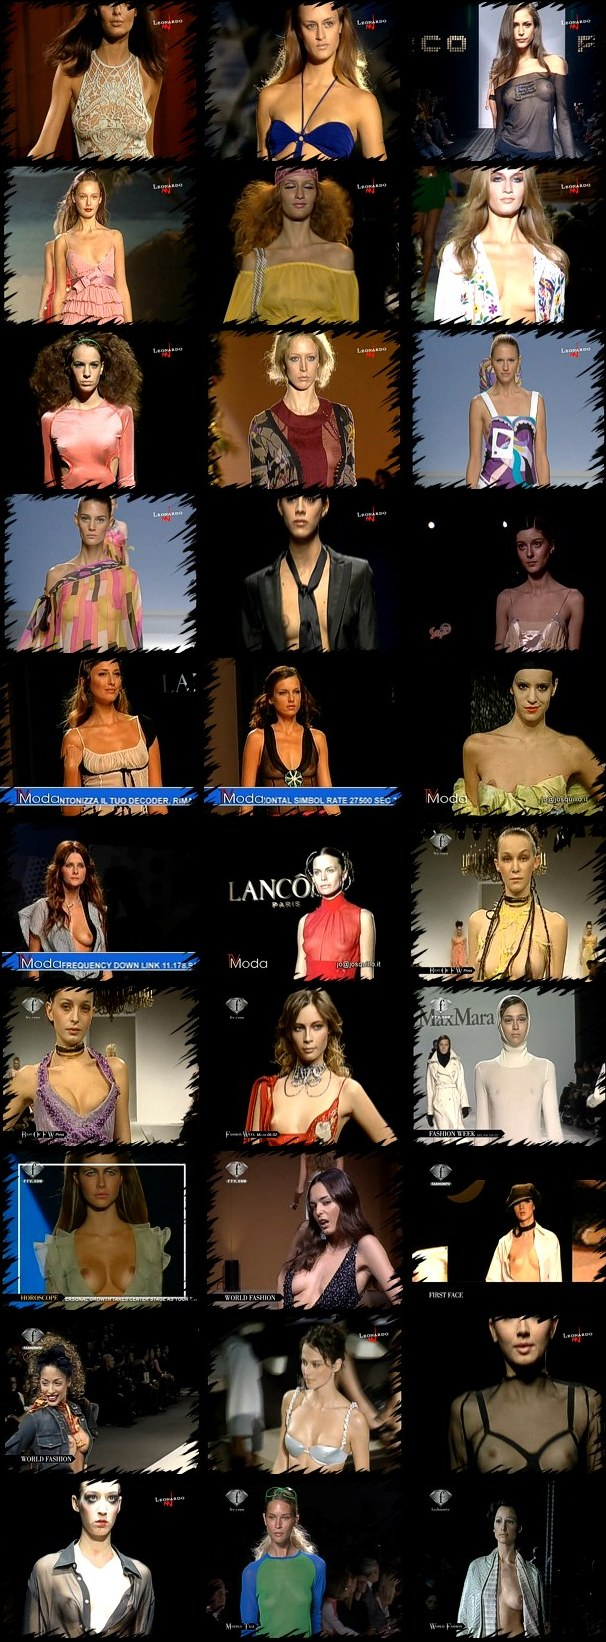 Exposed breasts and nipples in fashion shows